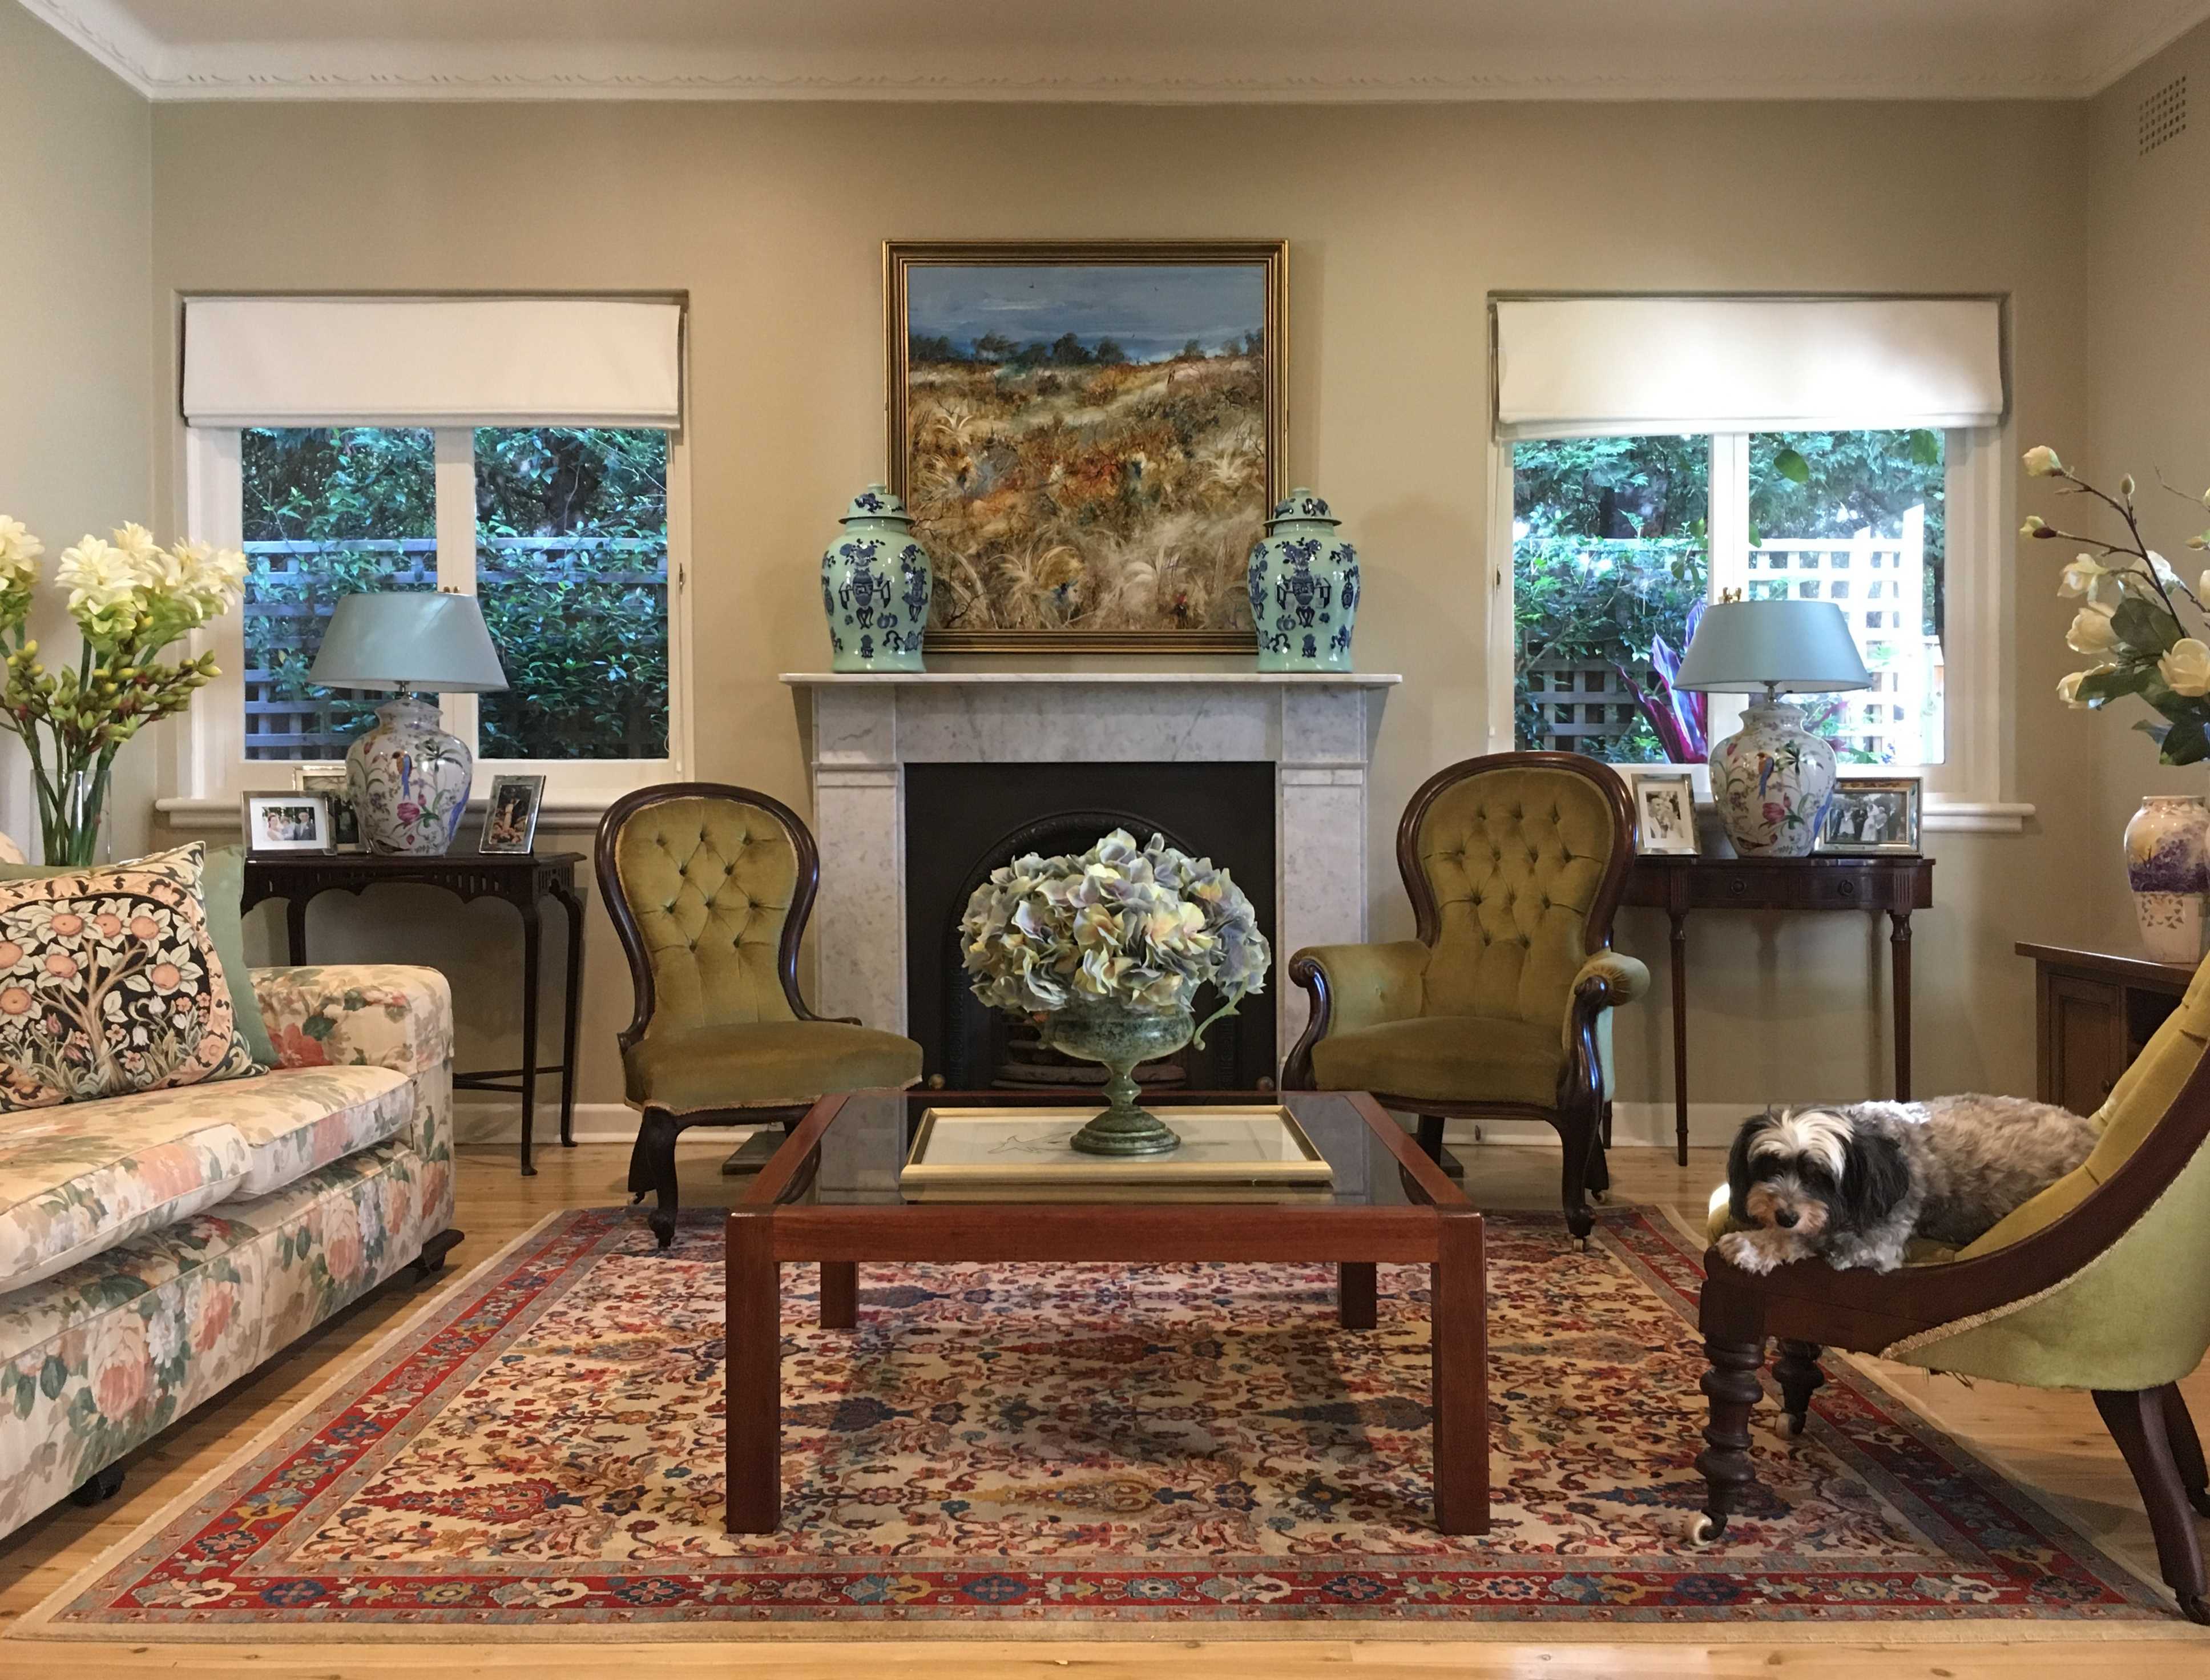 hunters hill antique english australian american georgian victorian colonial persian rug cadrys elegan sitting room roman blinds porcelain lamps xavier hinde interiors interior design